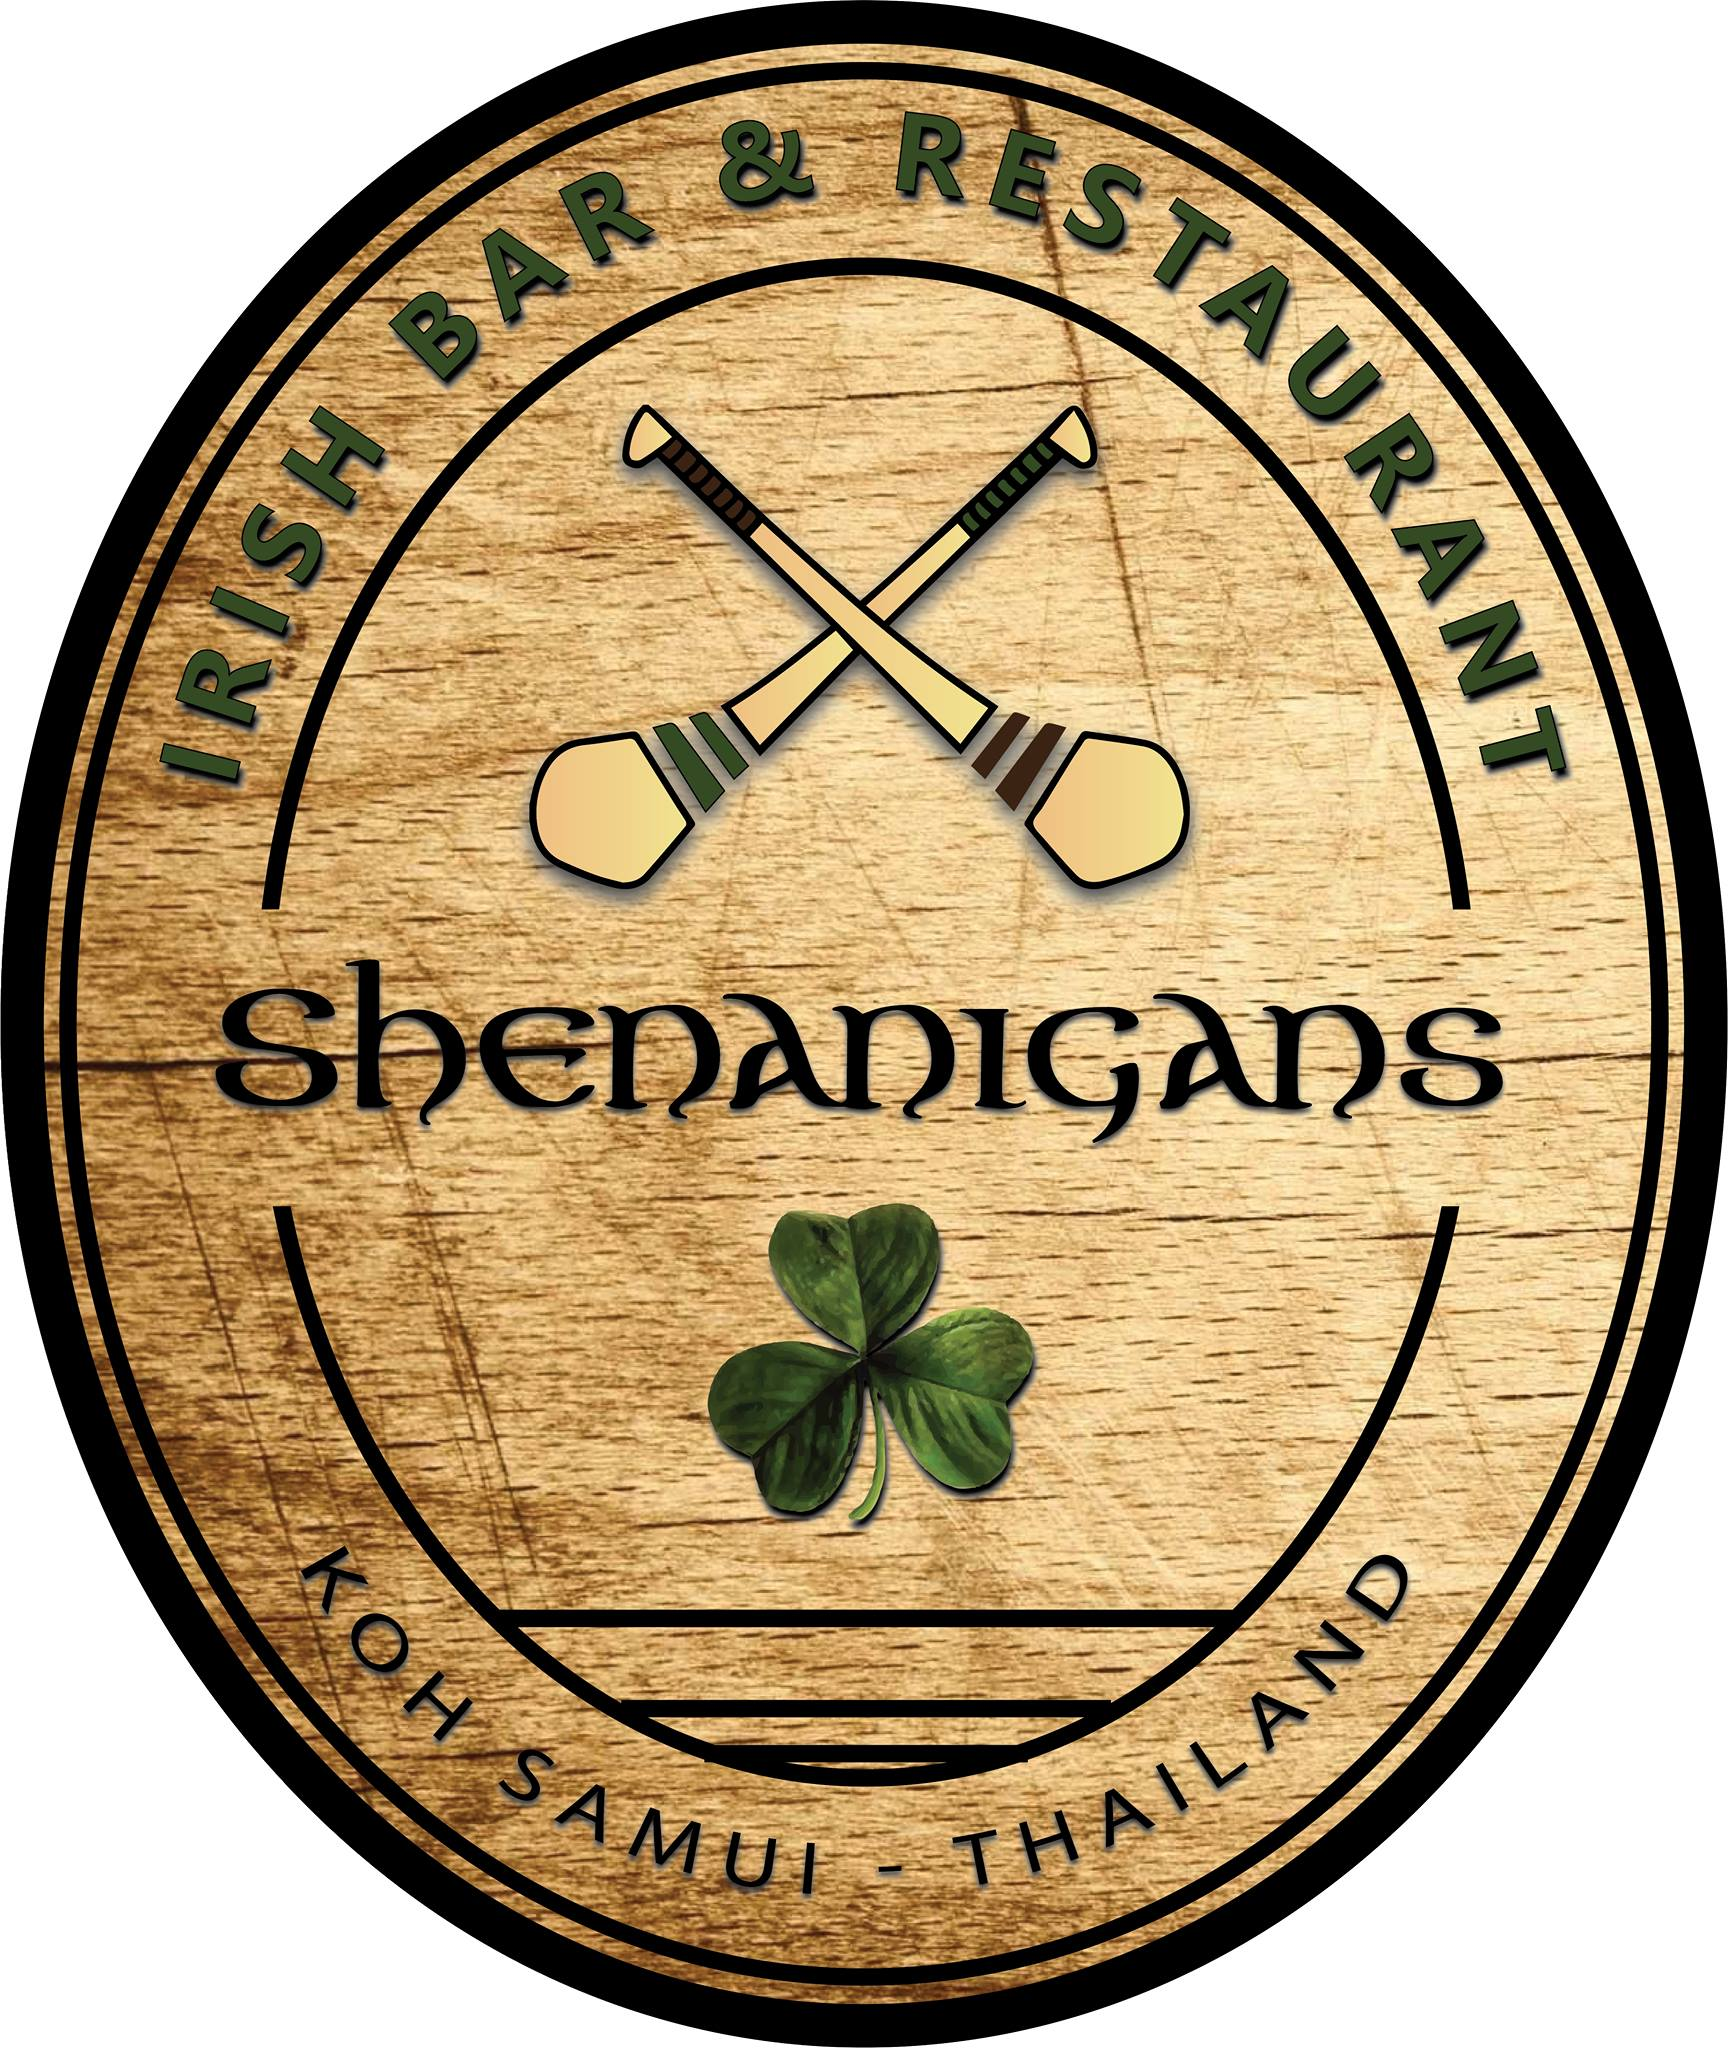 Shenanigans Irish Restaurant